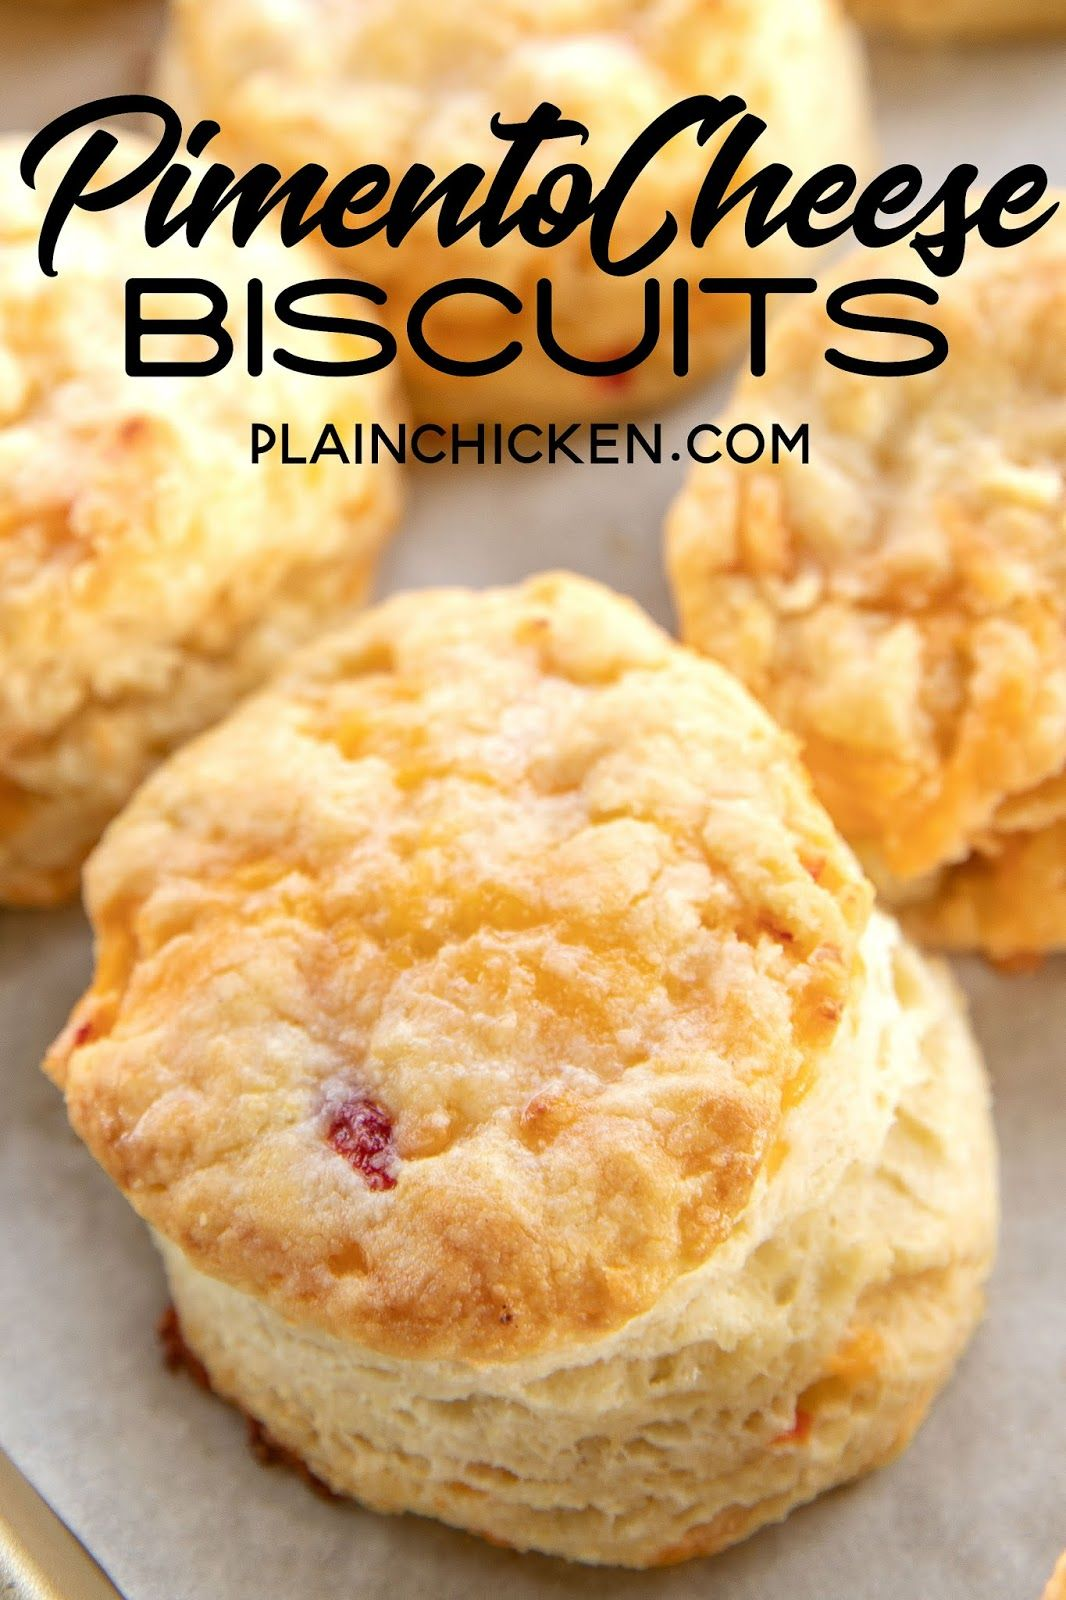 Homemade Pimento Cheese Buttermilk Biscuits Recipe These Are The Best They Homemade Pimento Cheese Buttermilk Biscuits Recipe Homemade Buttermilk Biscuits